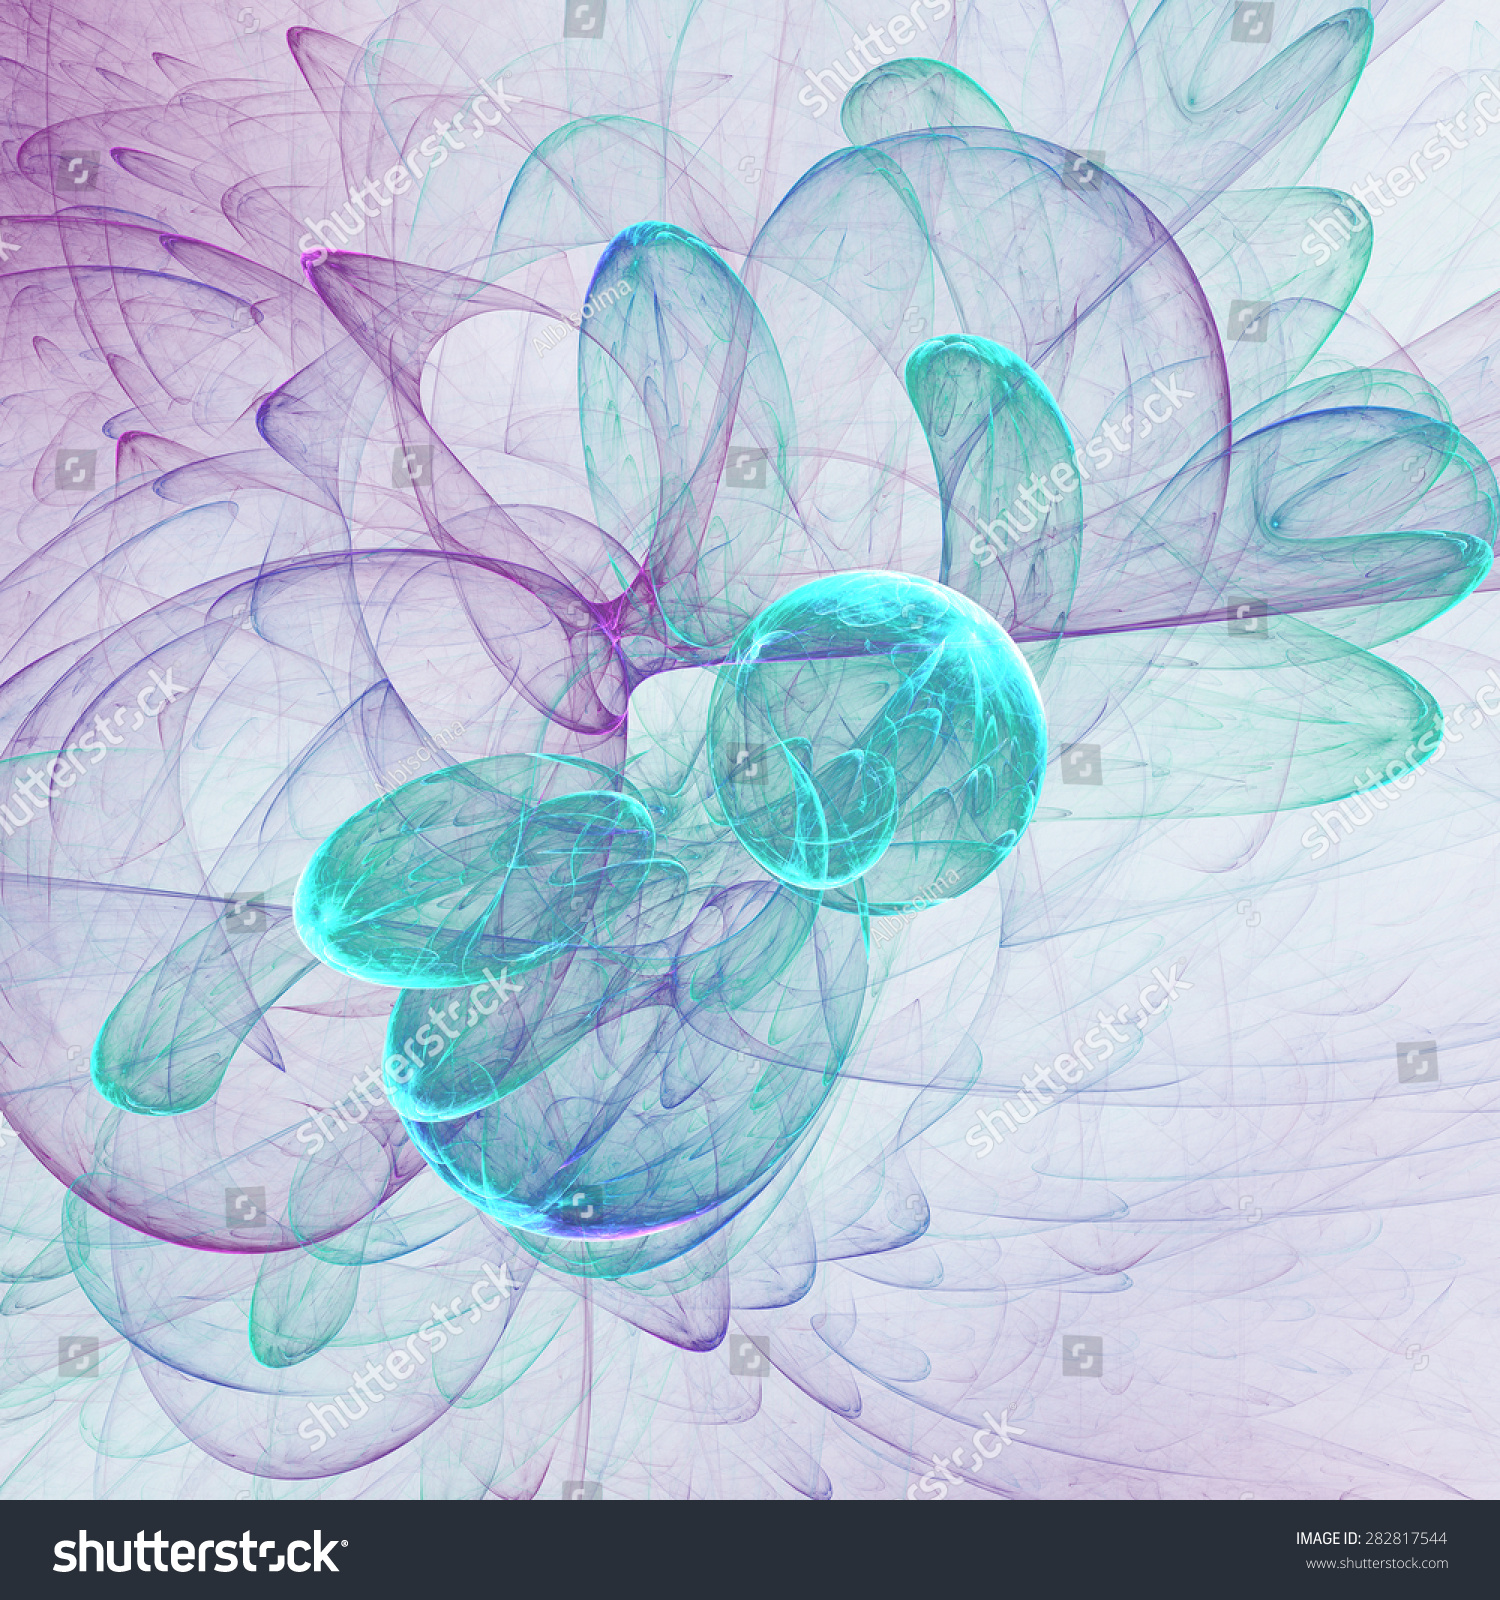 Nice Abstract Fractal Wallpaper On White Background Stock